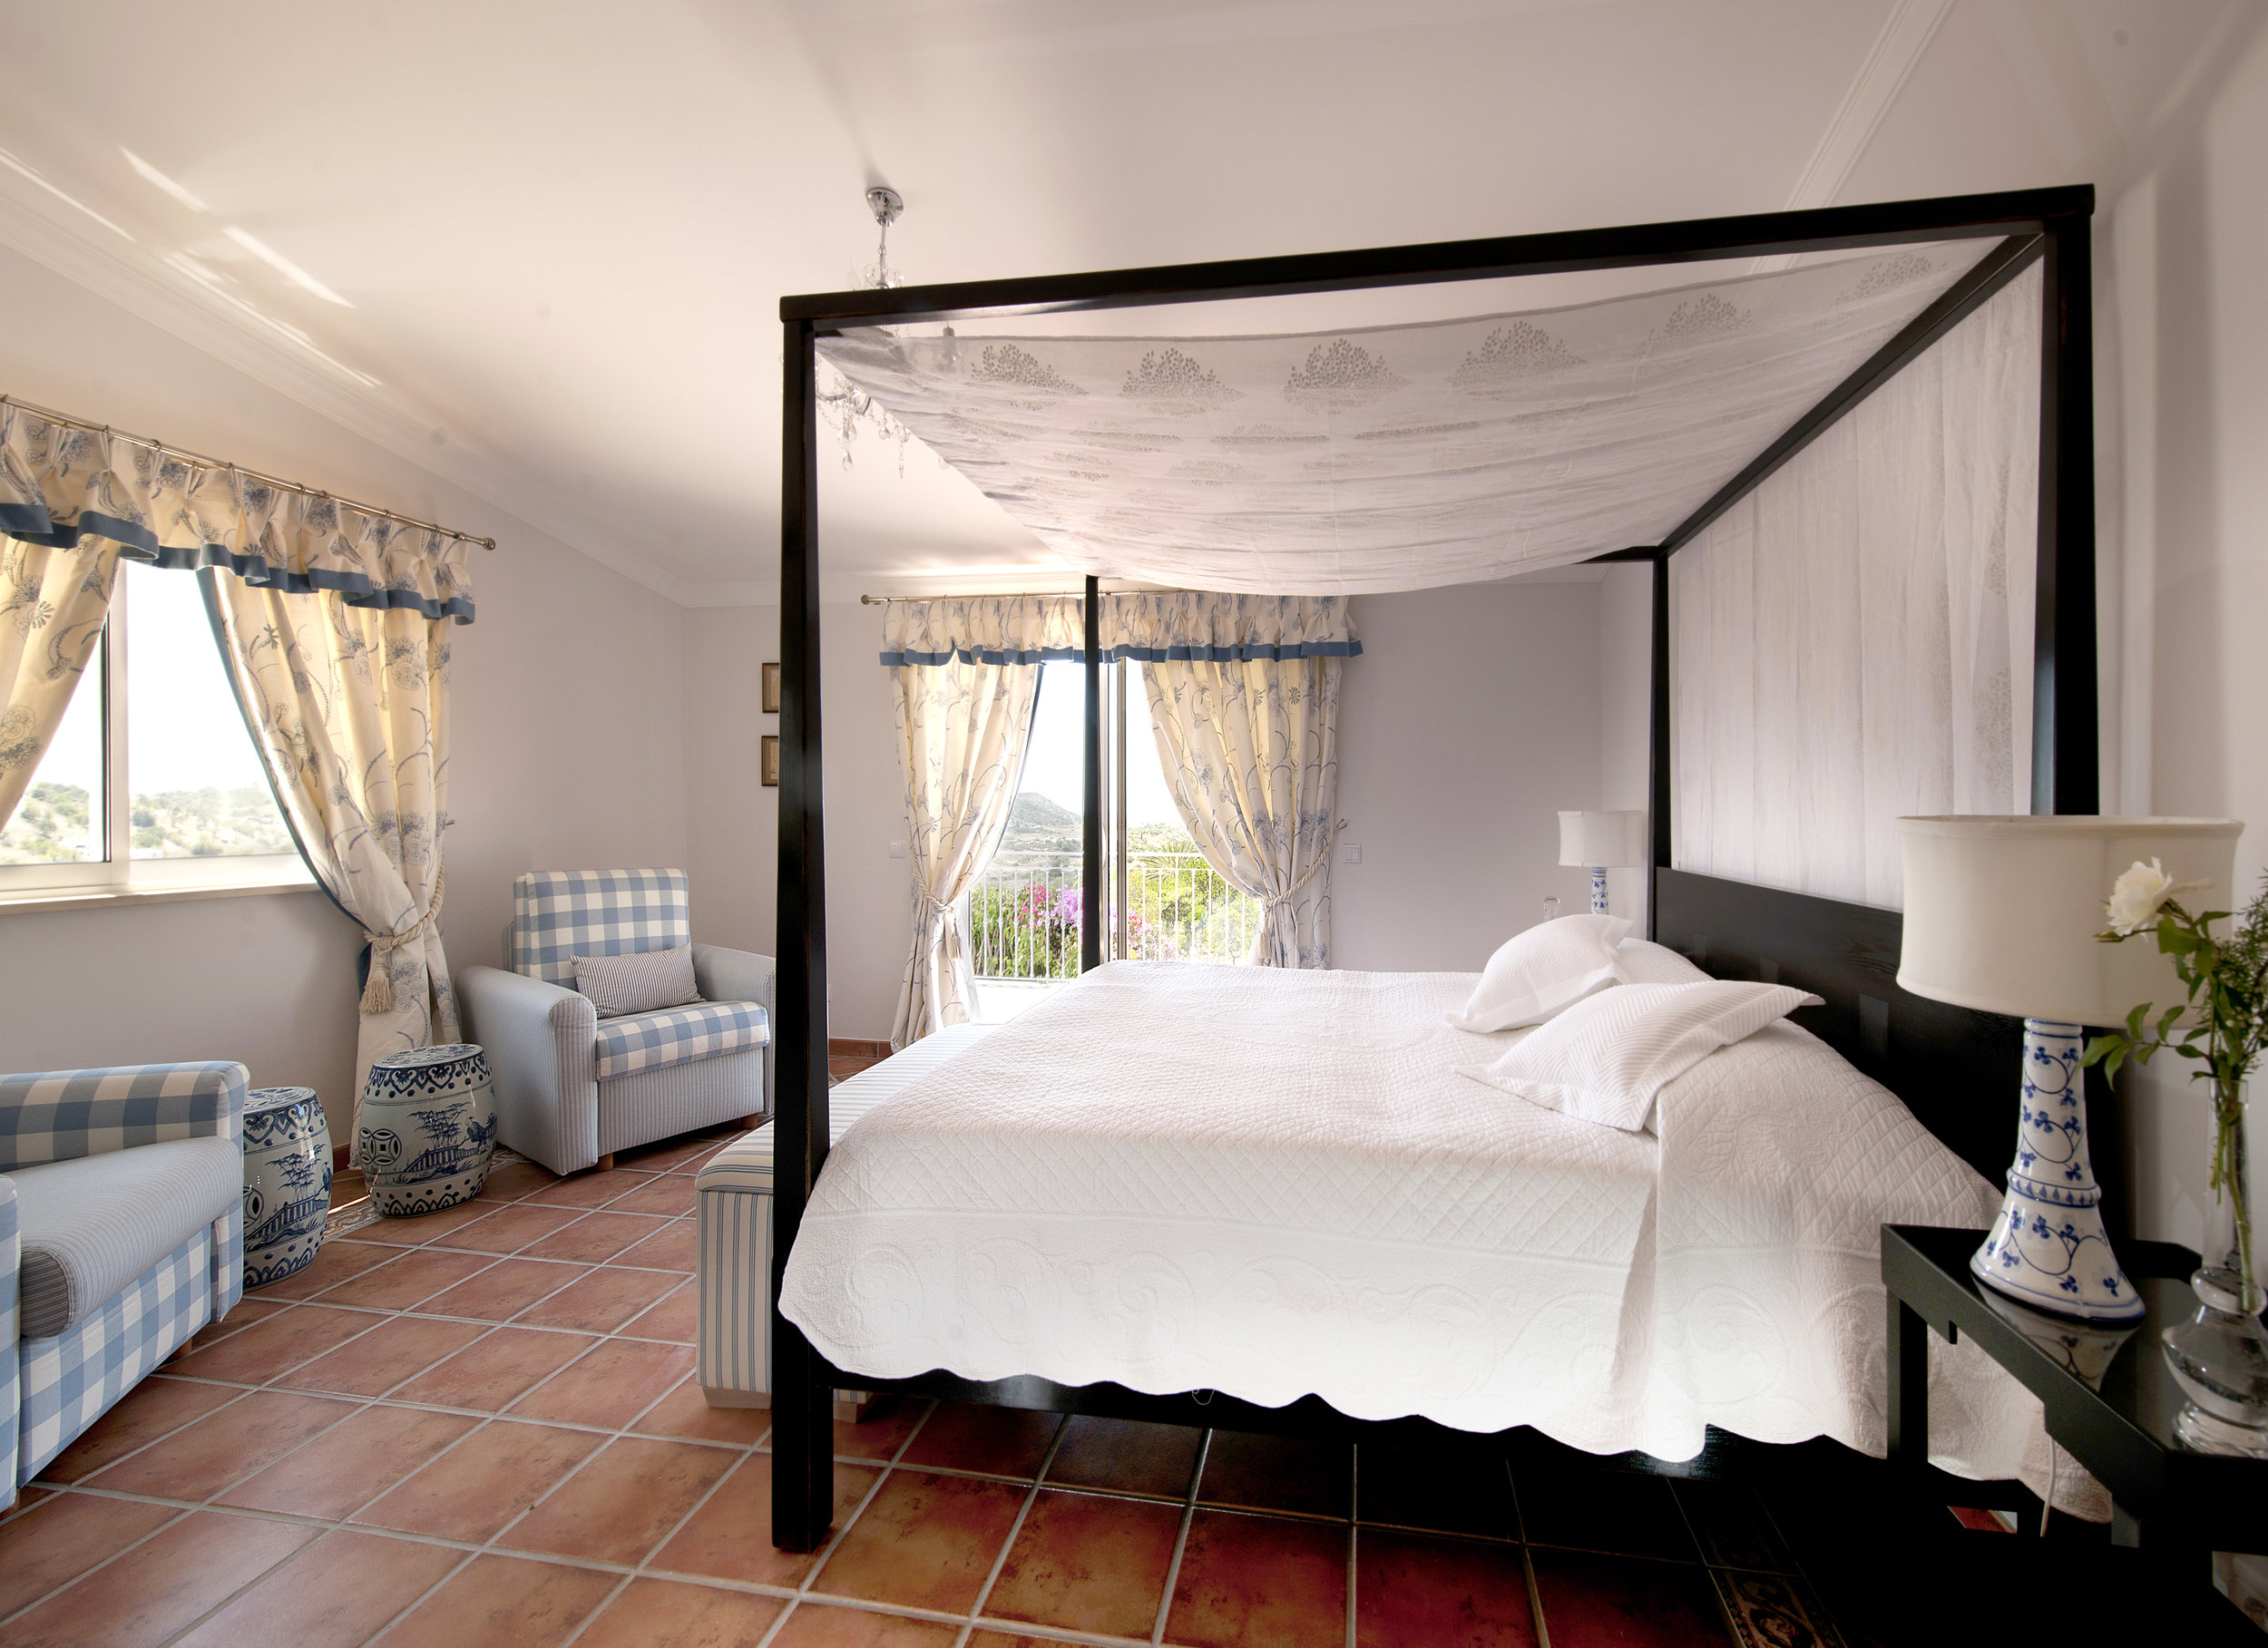 9 Zavial Master Suite with Sea View.jpg